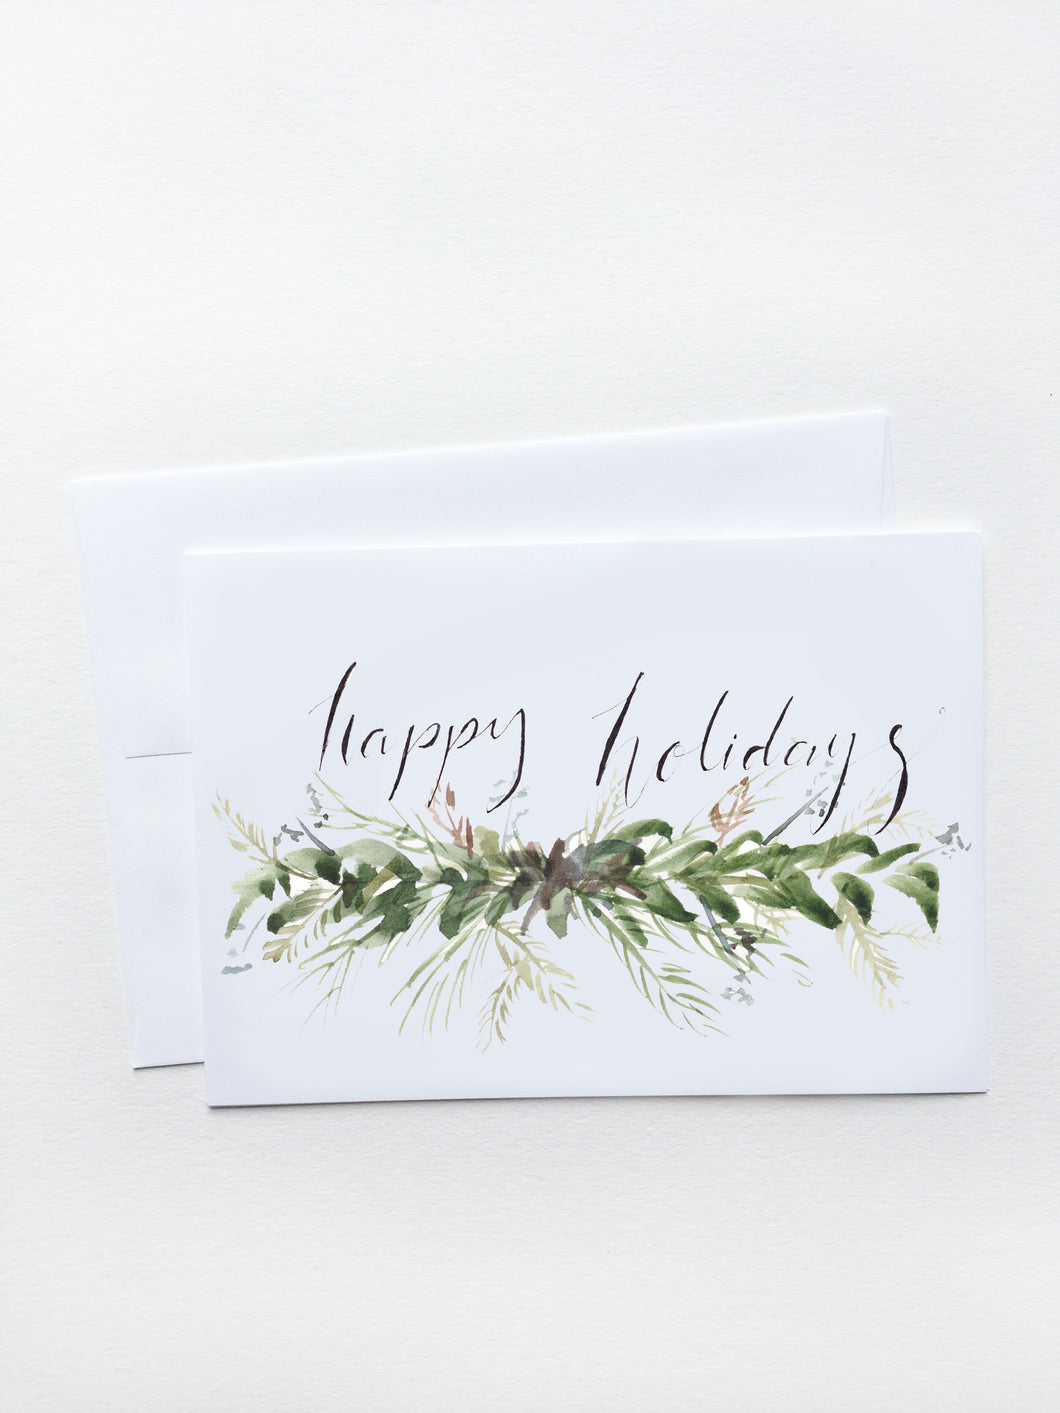 Happy Holidays Fir Garland Card